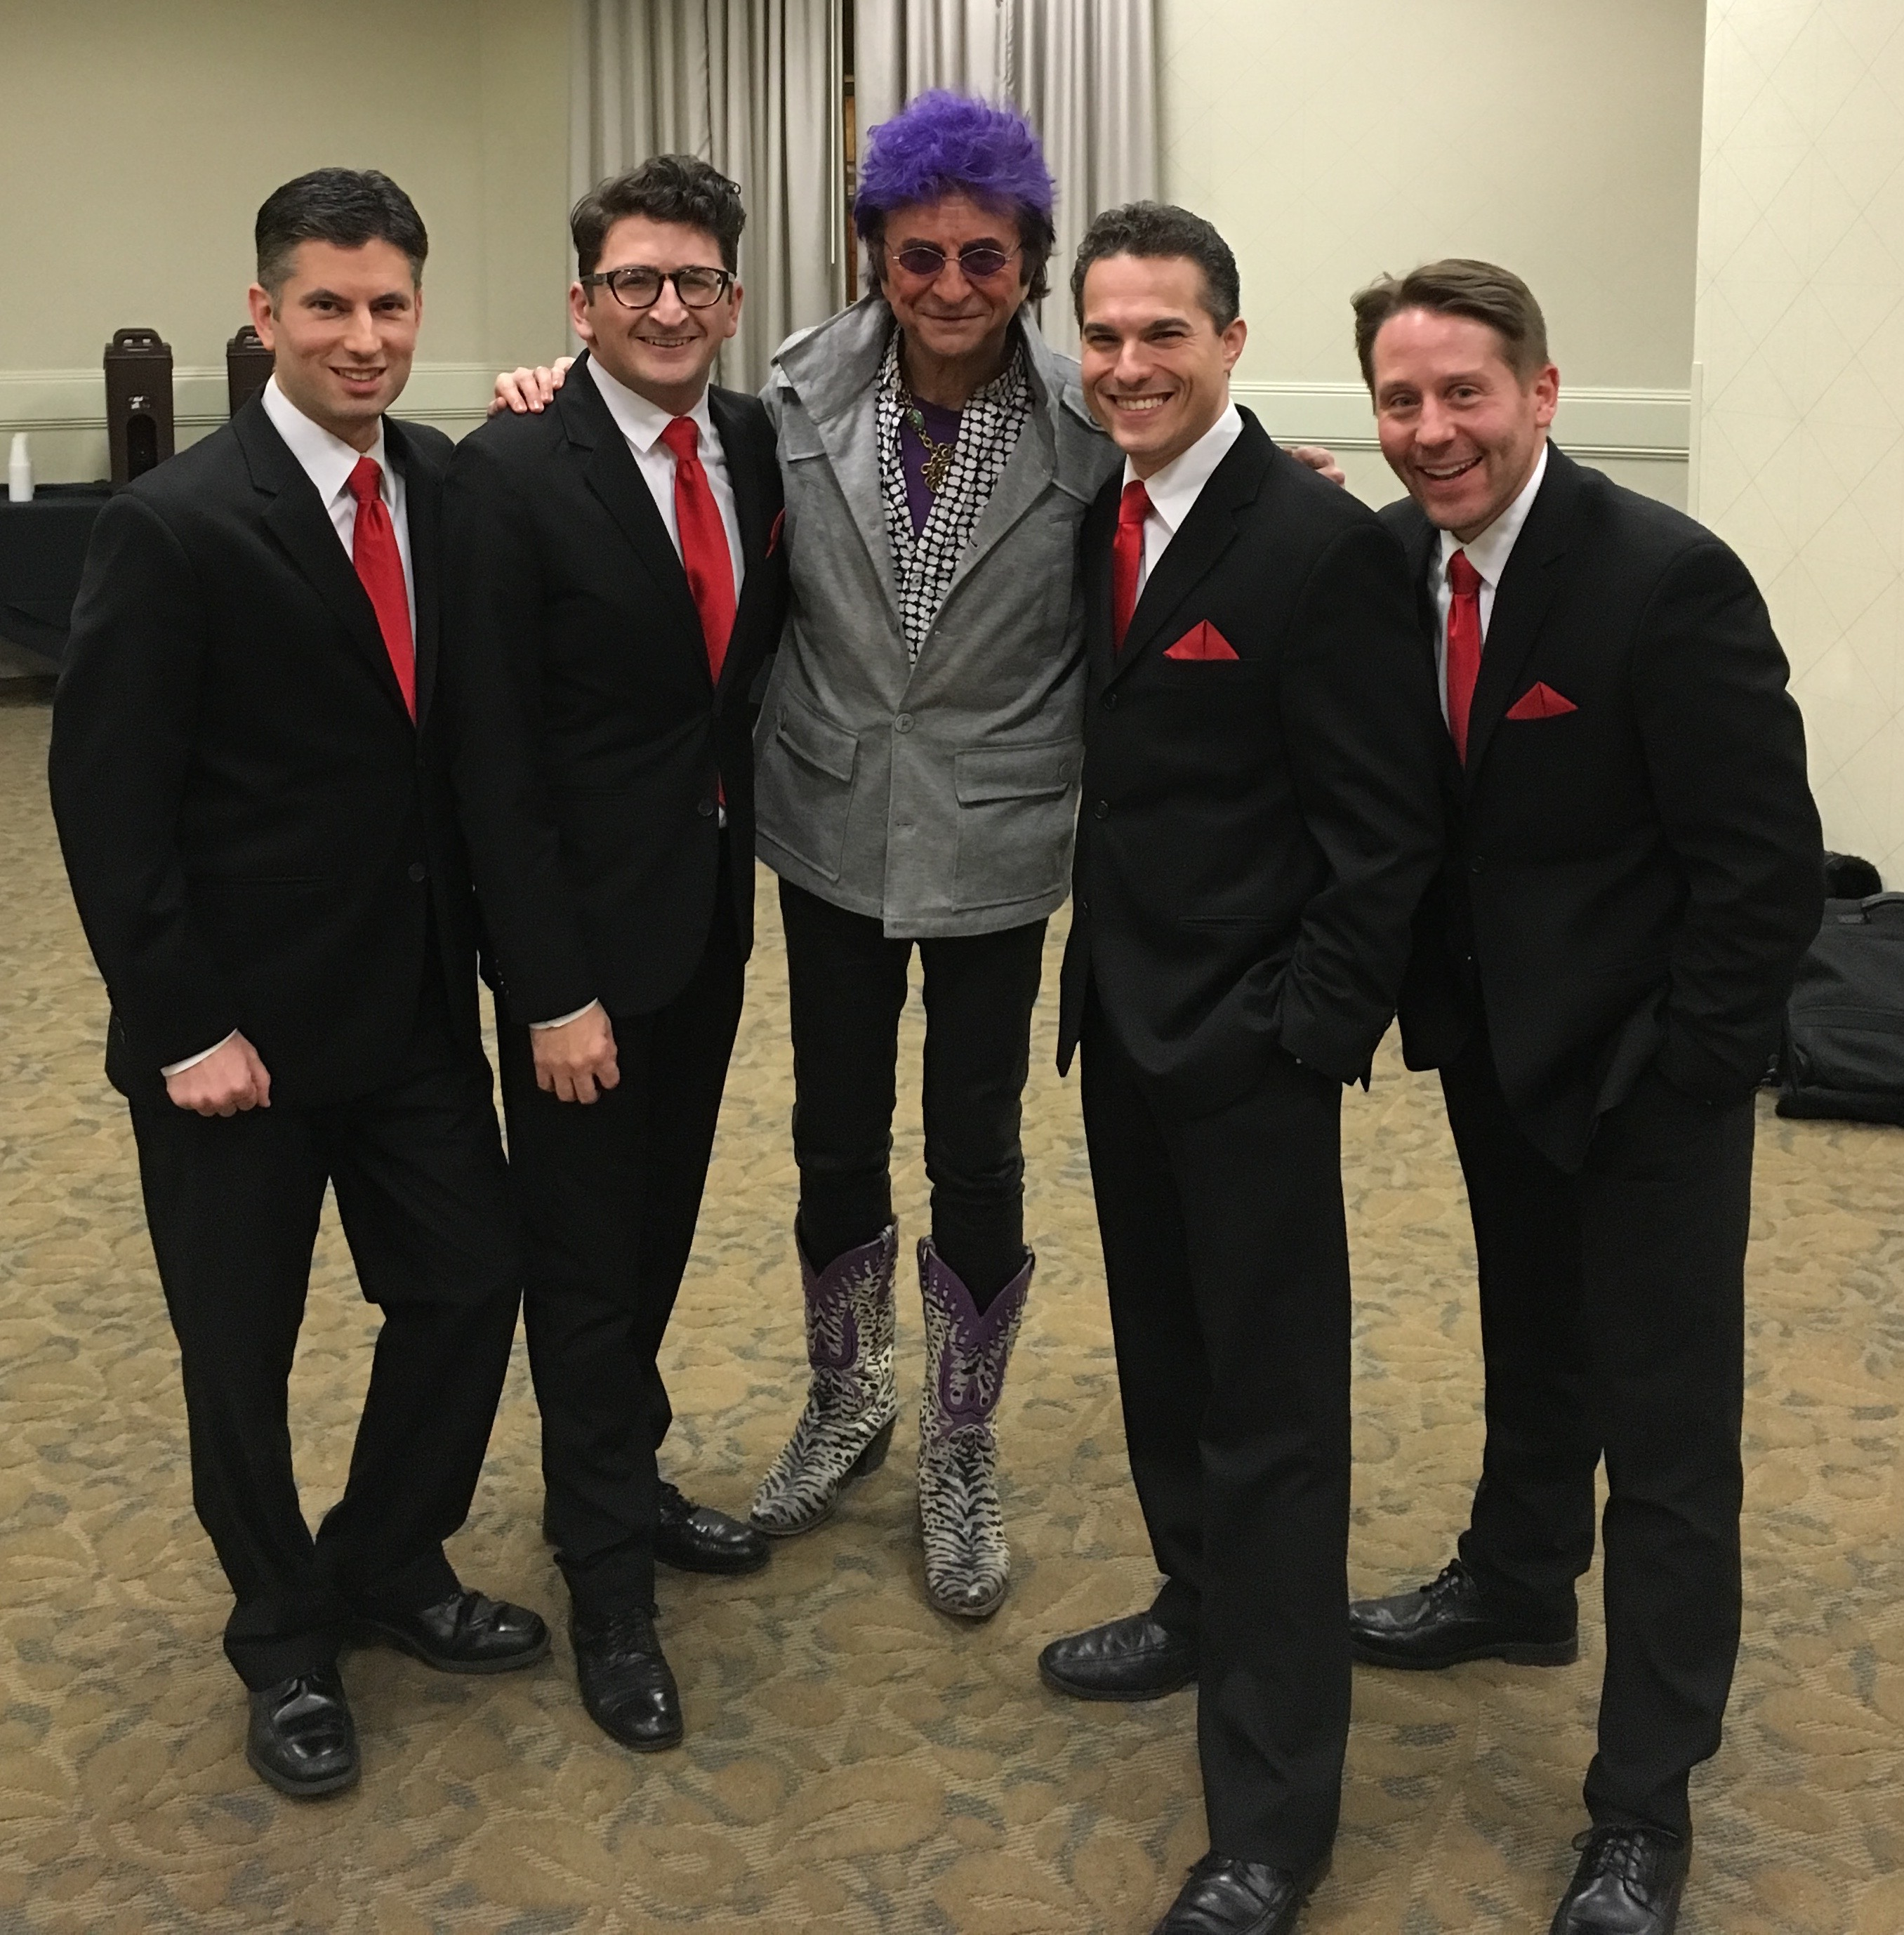 The Four C Notes with Jim Peterik